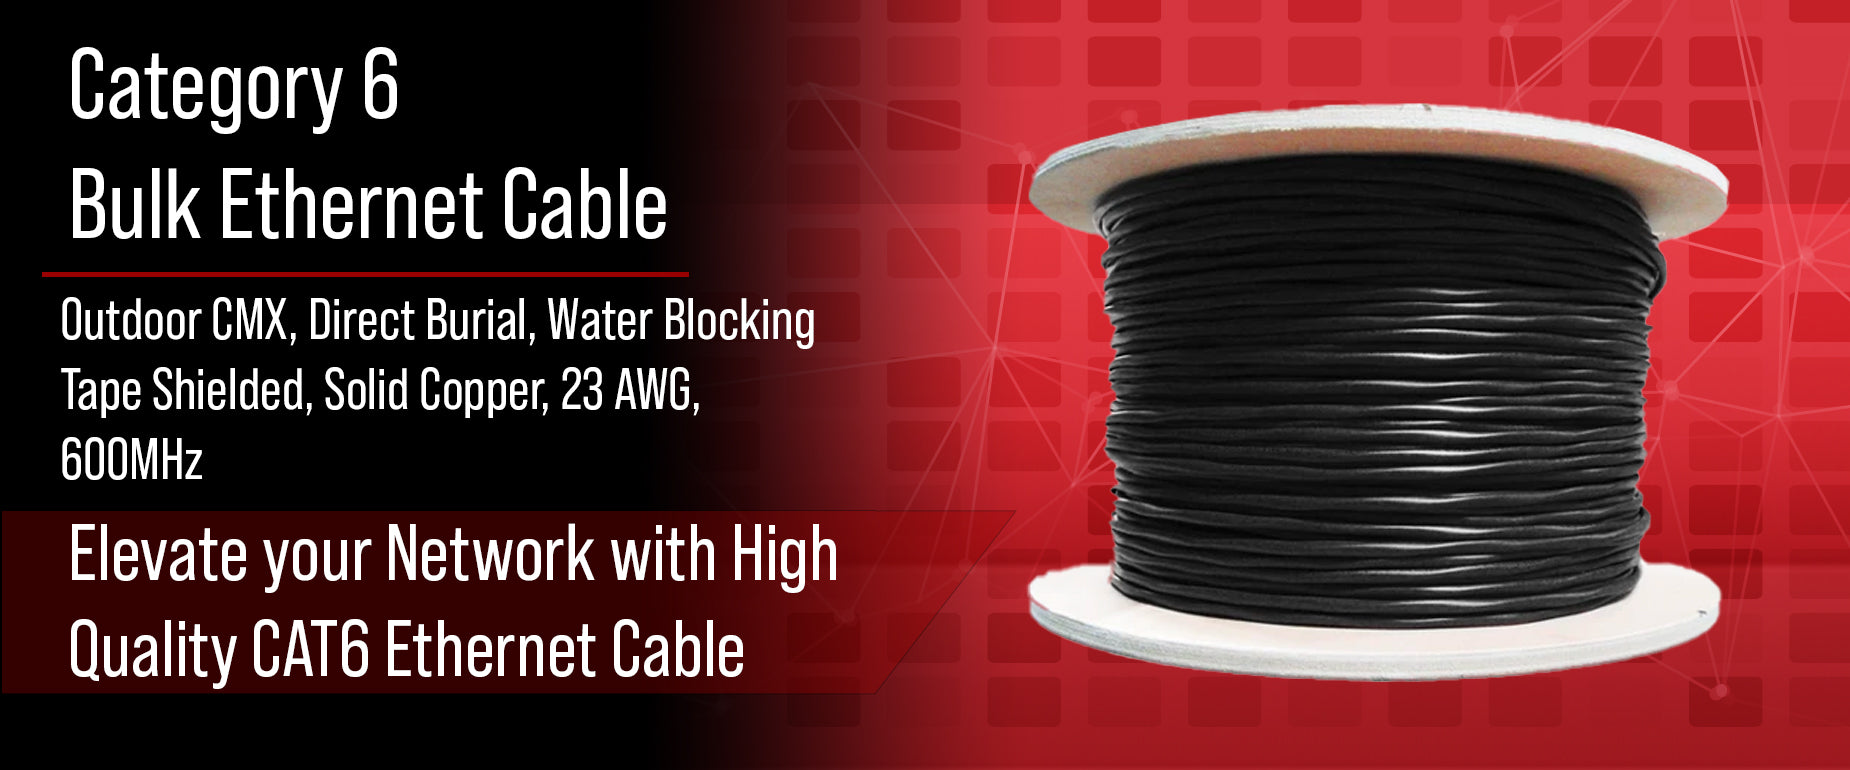 CAT6 Outdoor Direct Burial Cable w/ Water Blocking Gel Tape